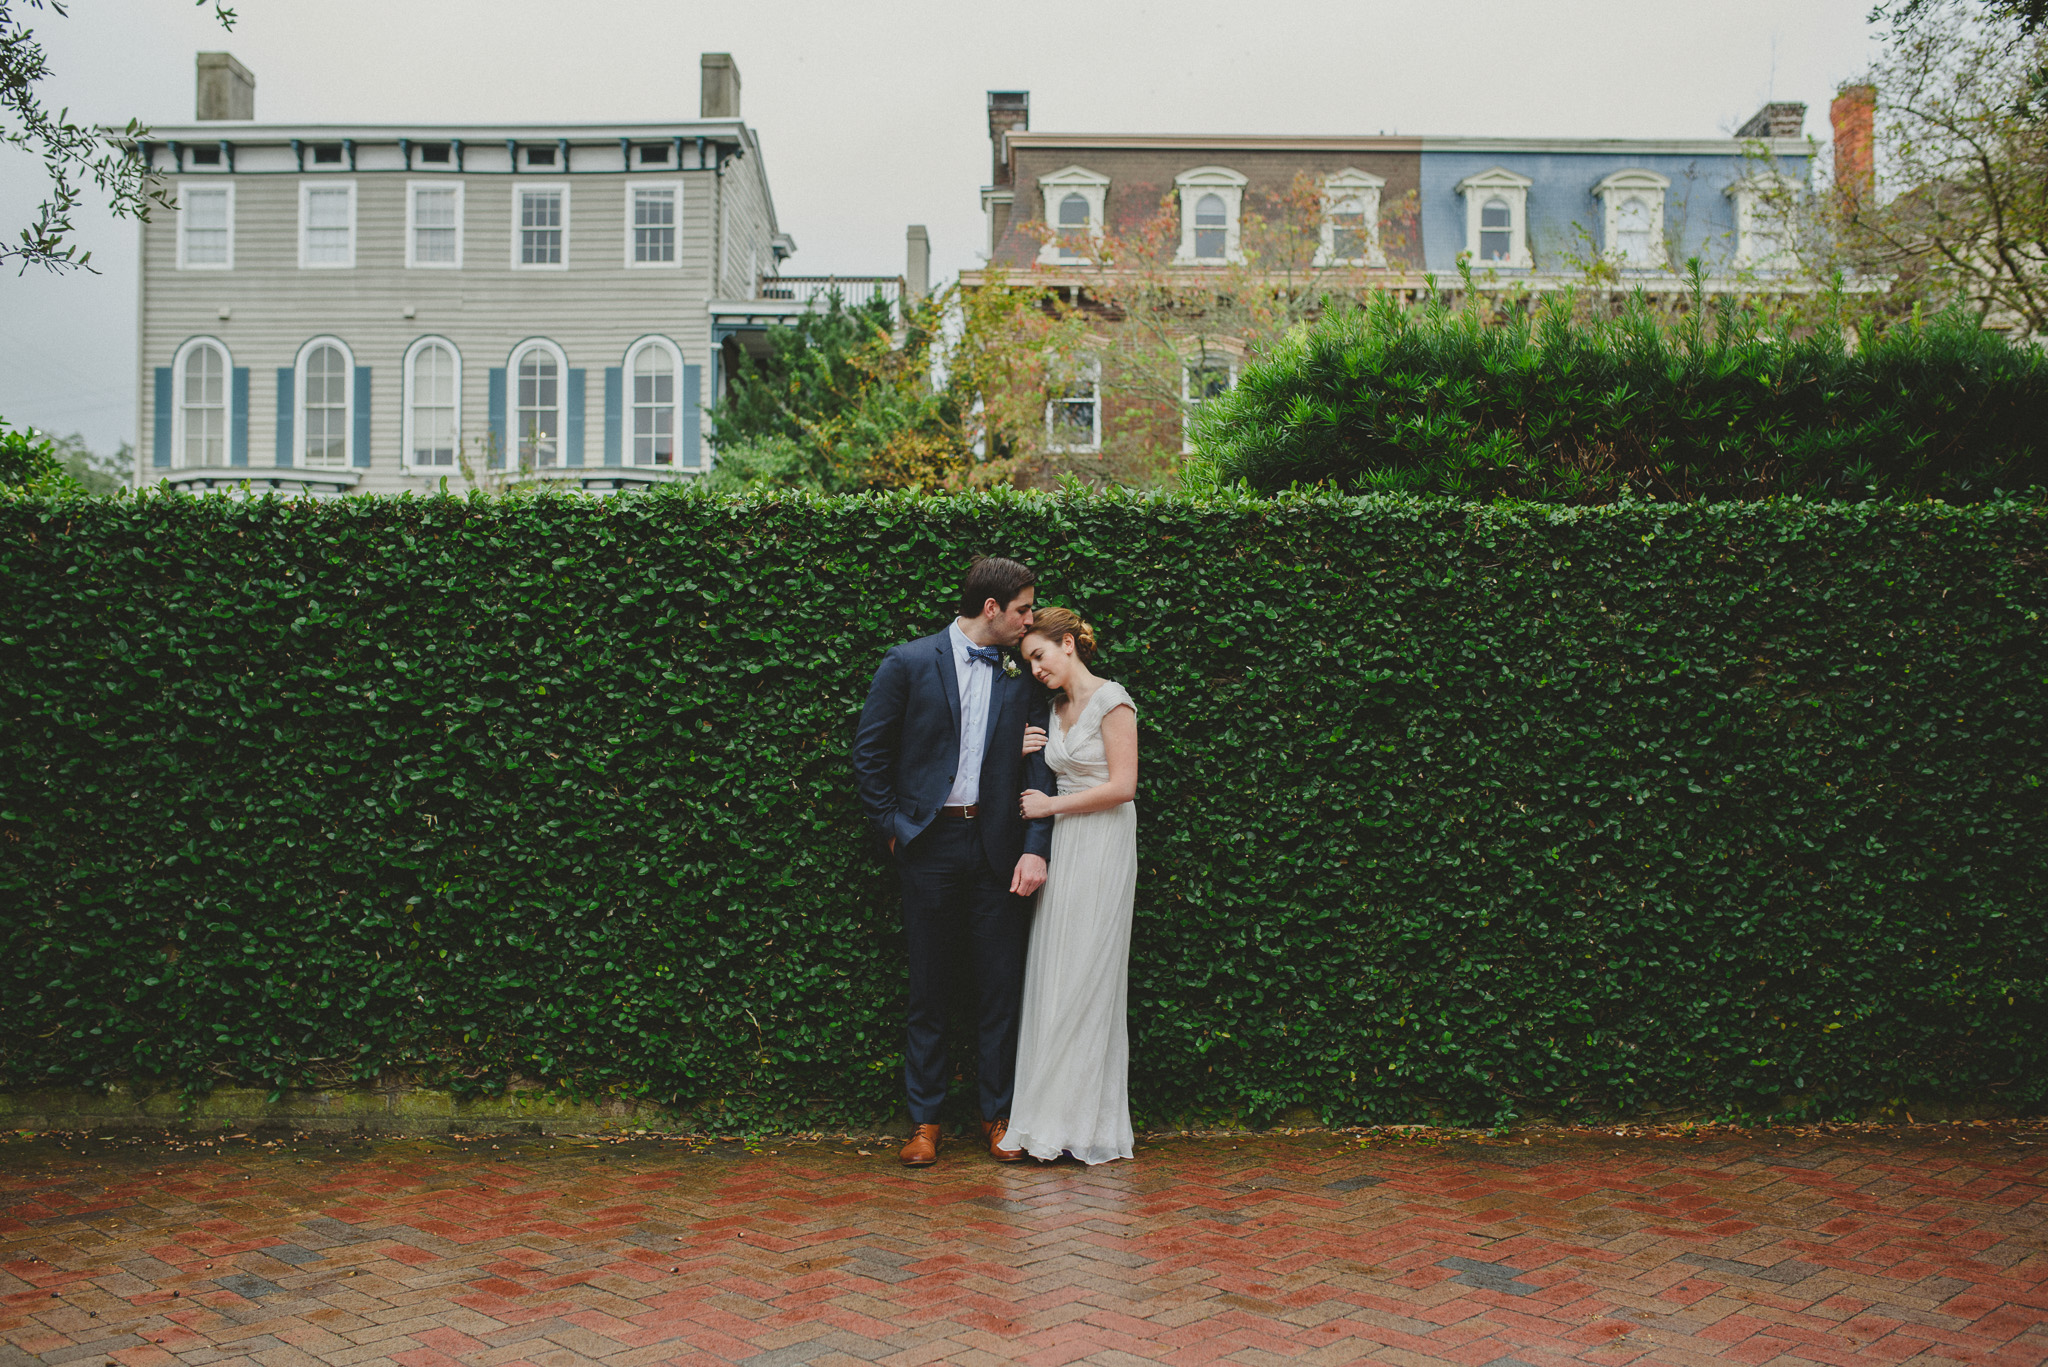 Savannah Elopement Photographer - Couple with ivy